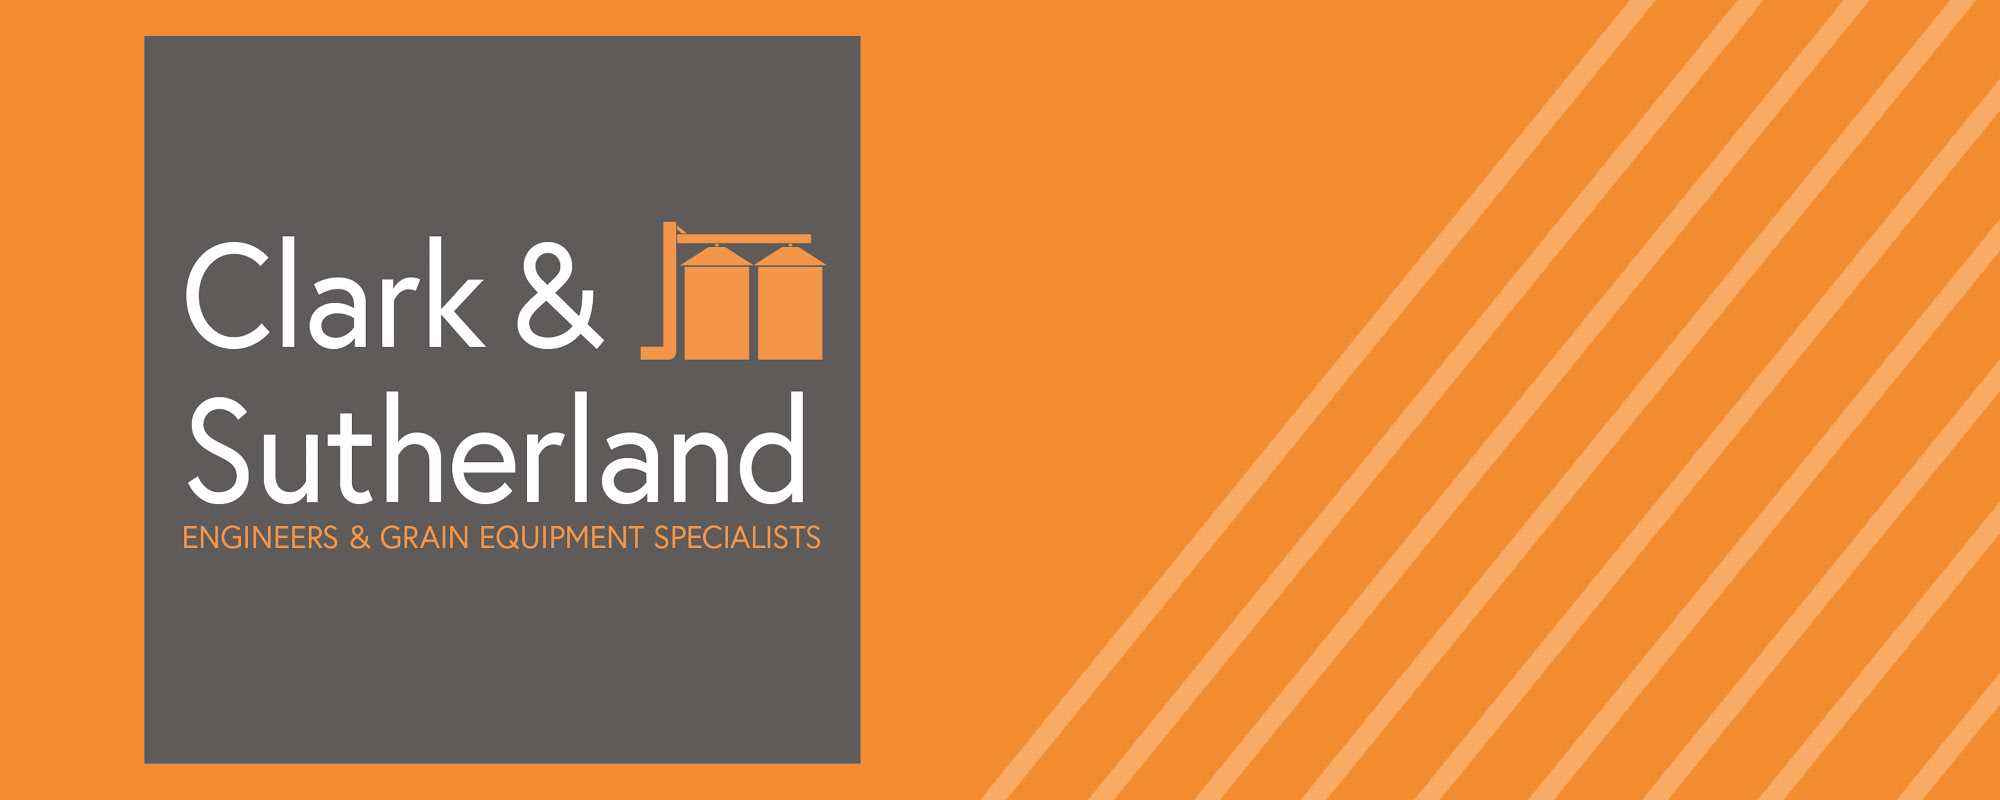 Our new look! Clark & Sutherland new logo on orange background